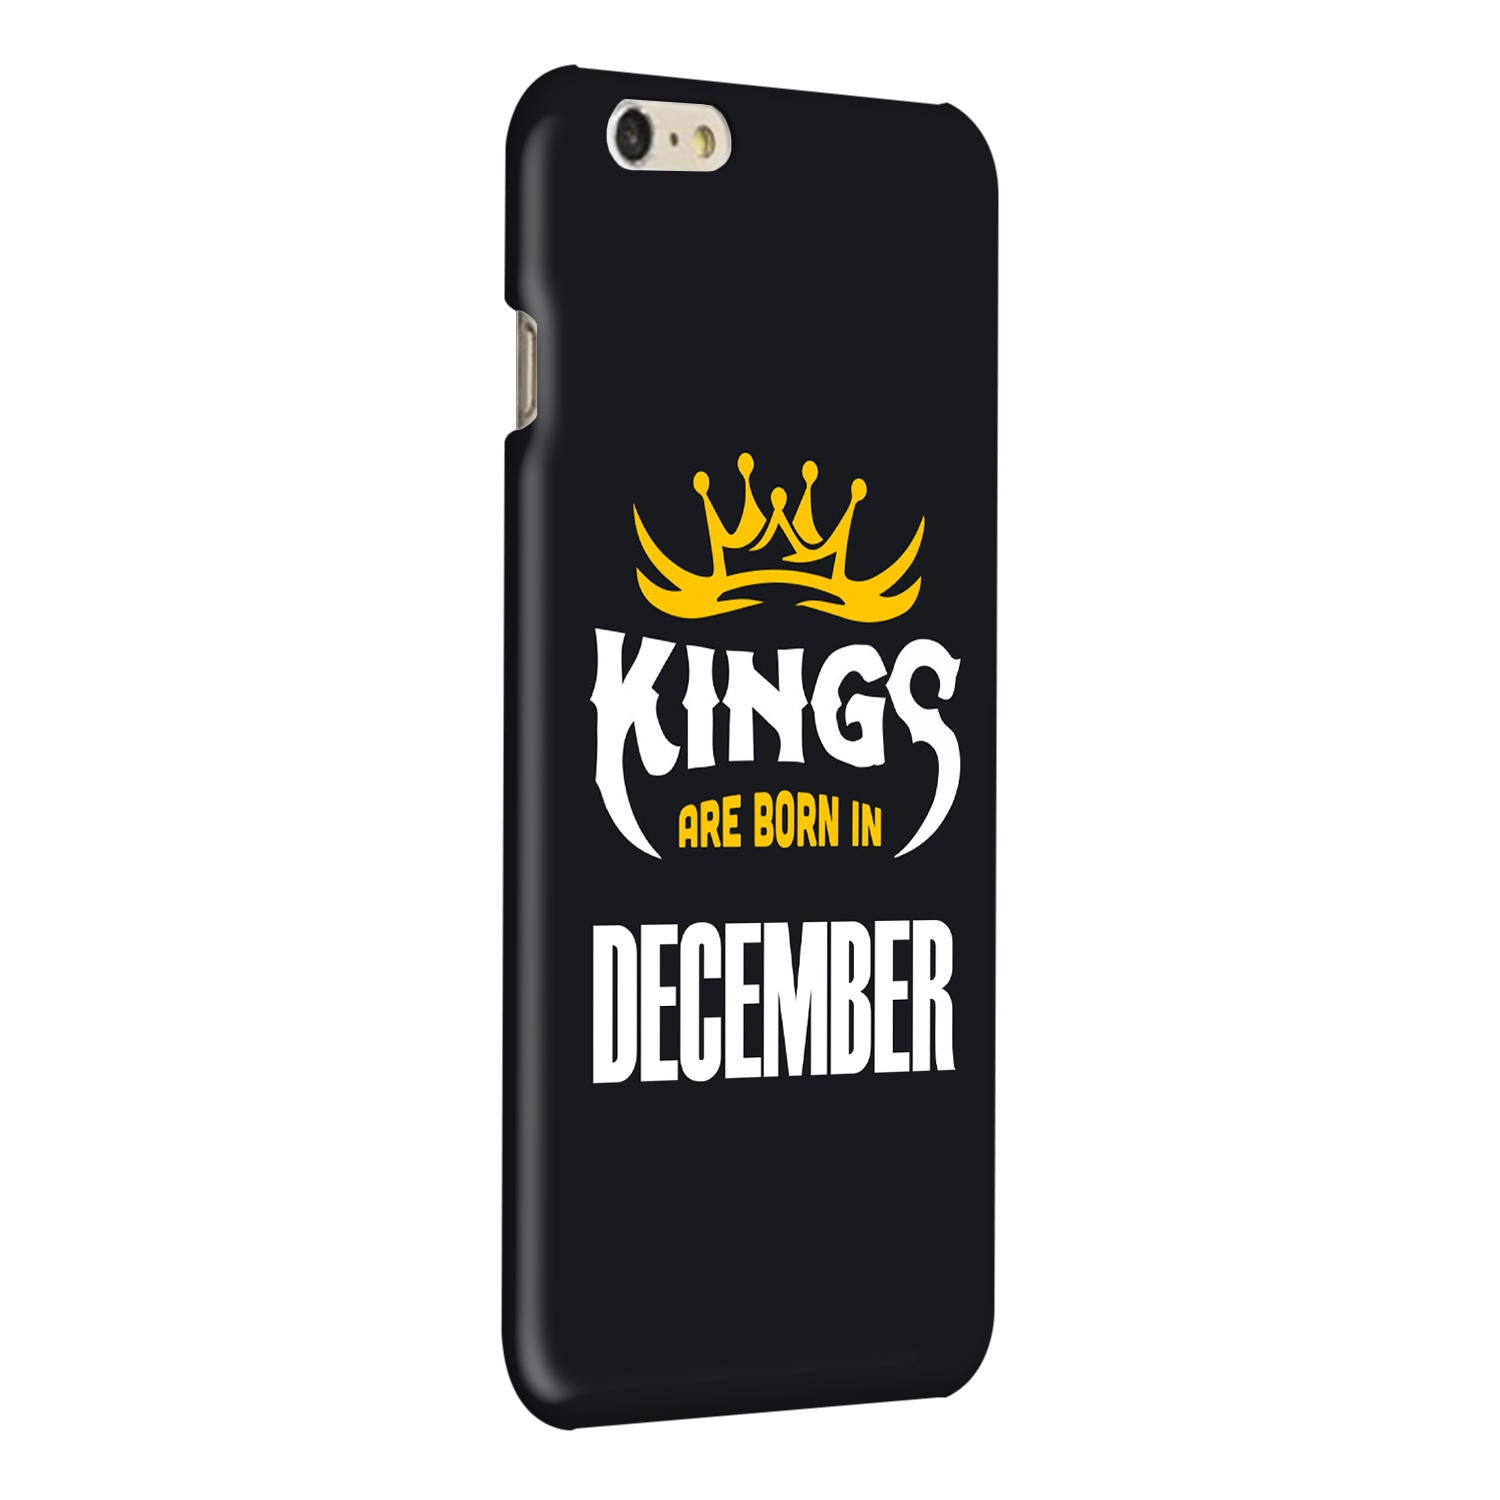 Kings December - Narcissist iPhone 6 Plus Mobile Cover Case